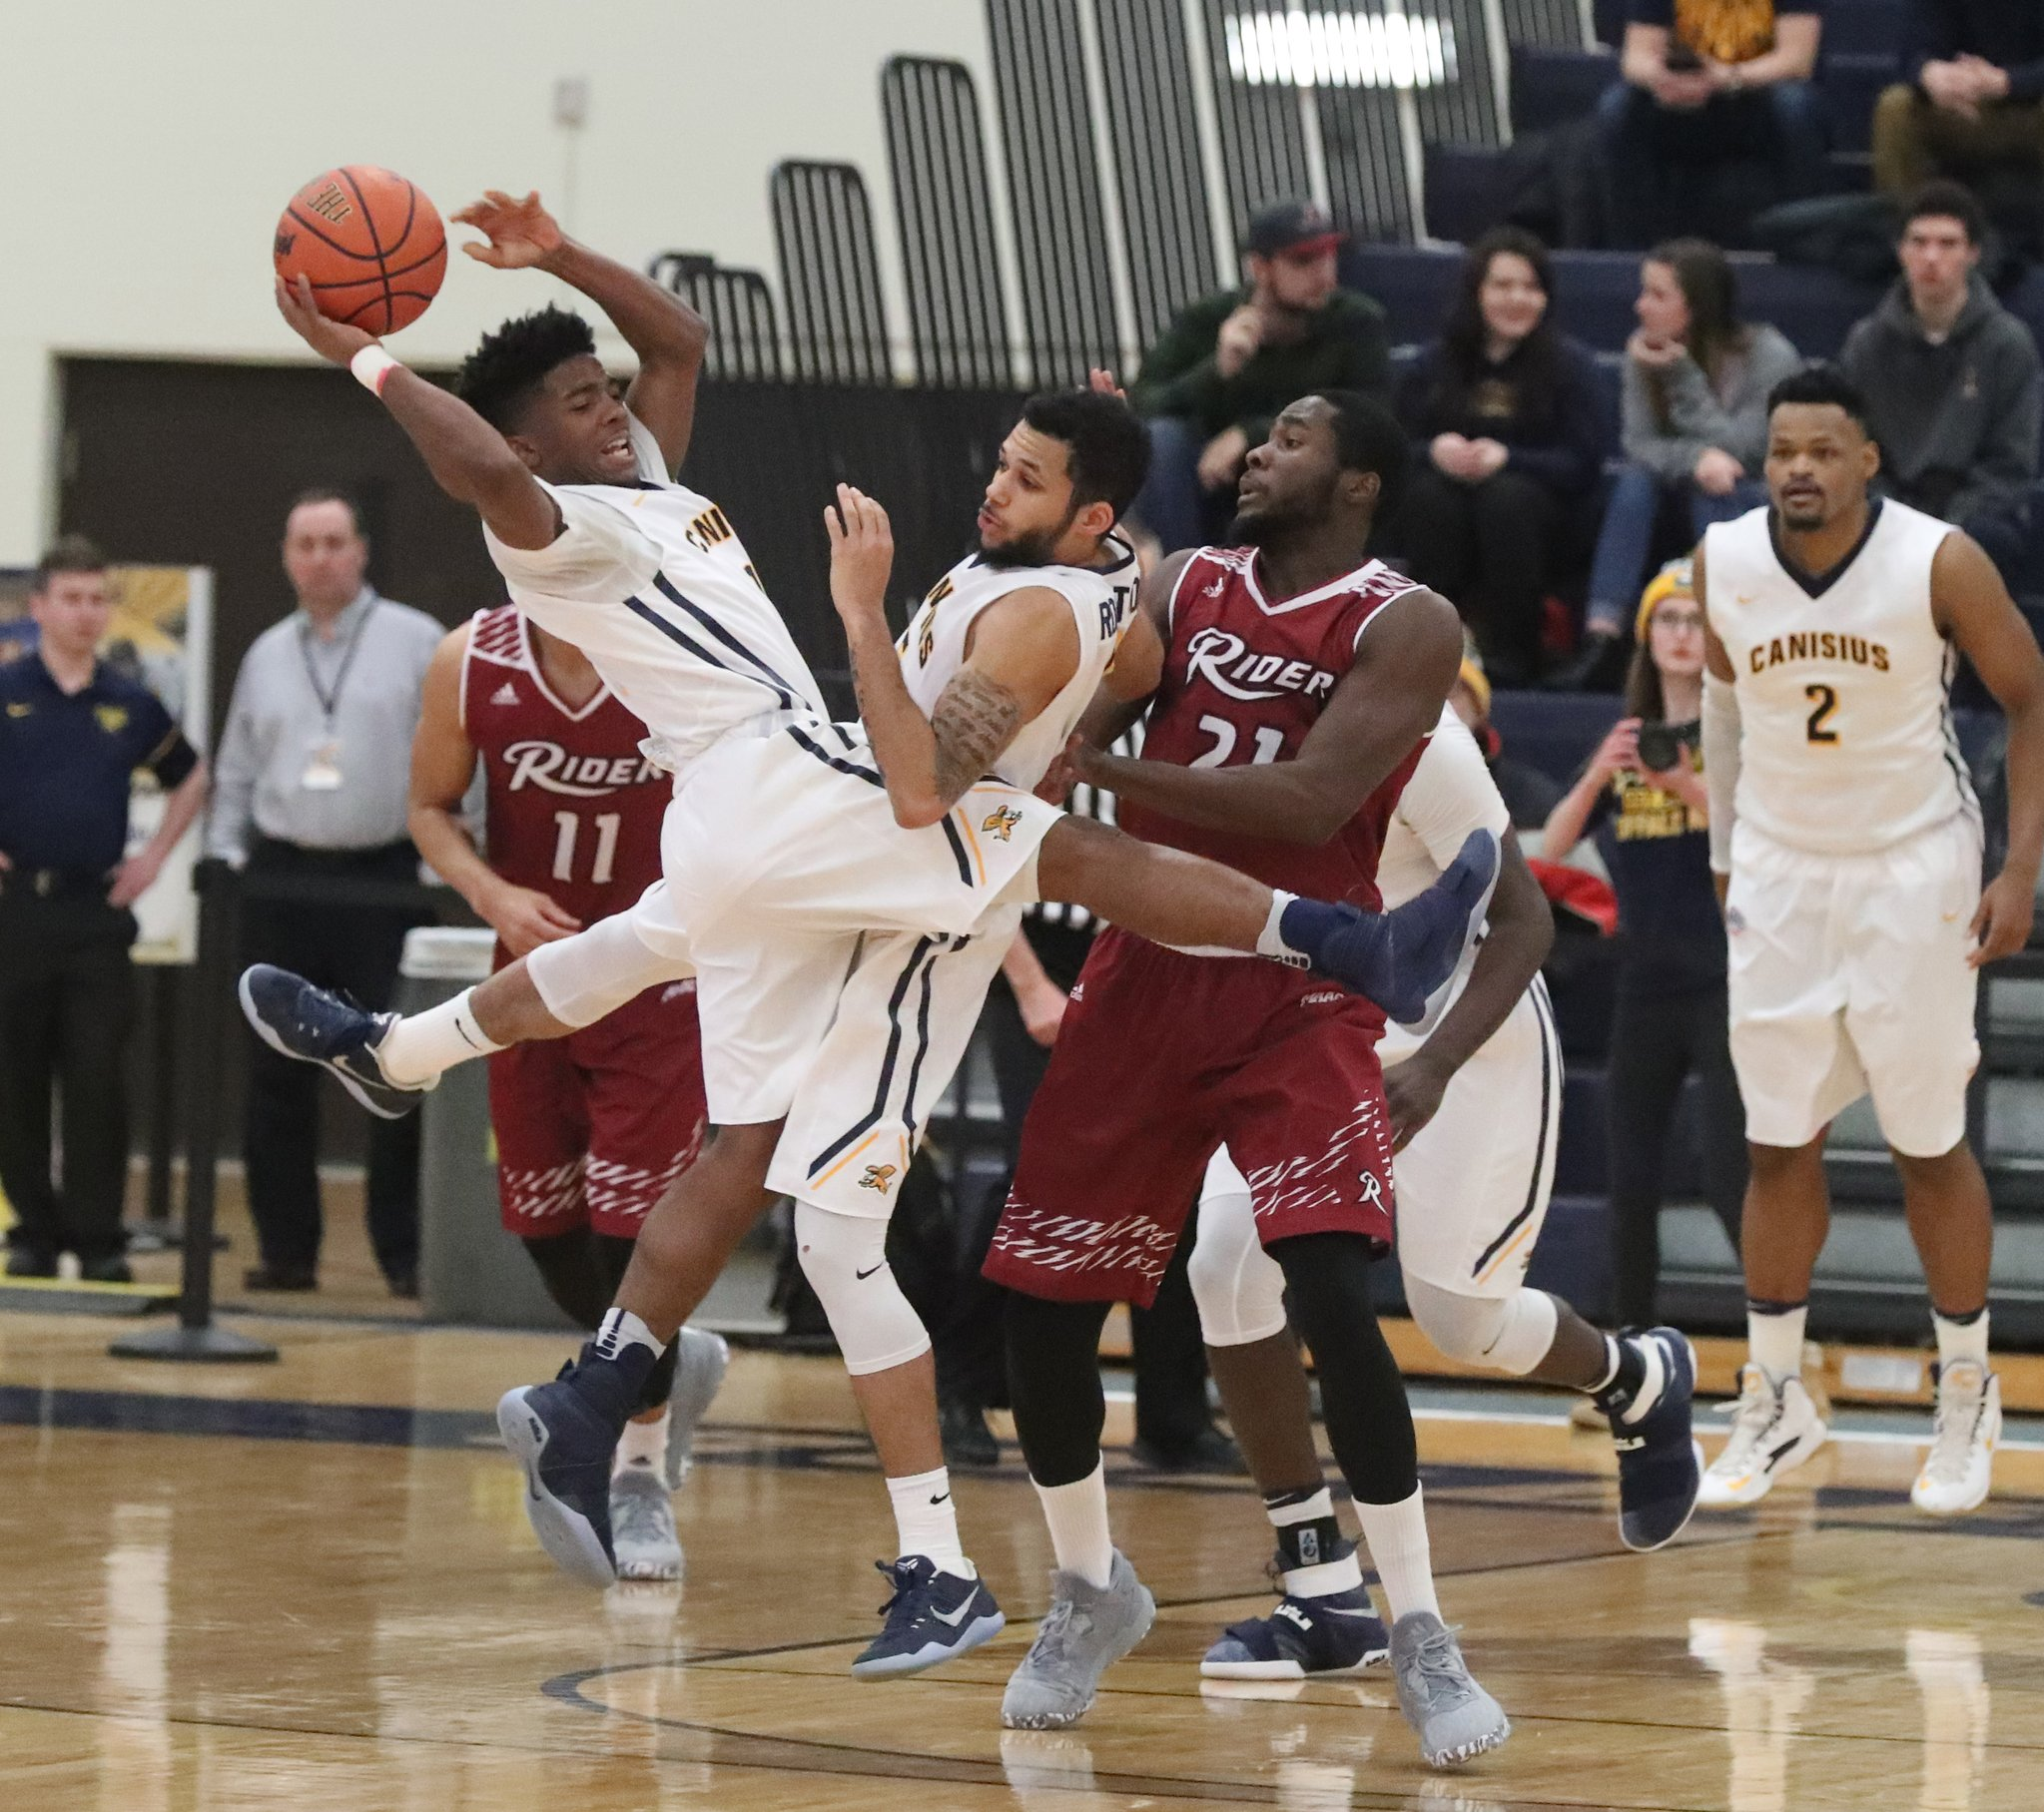 Canisius' Malik Johnson makes a pass. (James P. McCoy/Buffalo News)